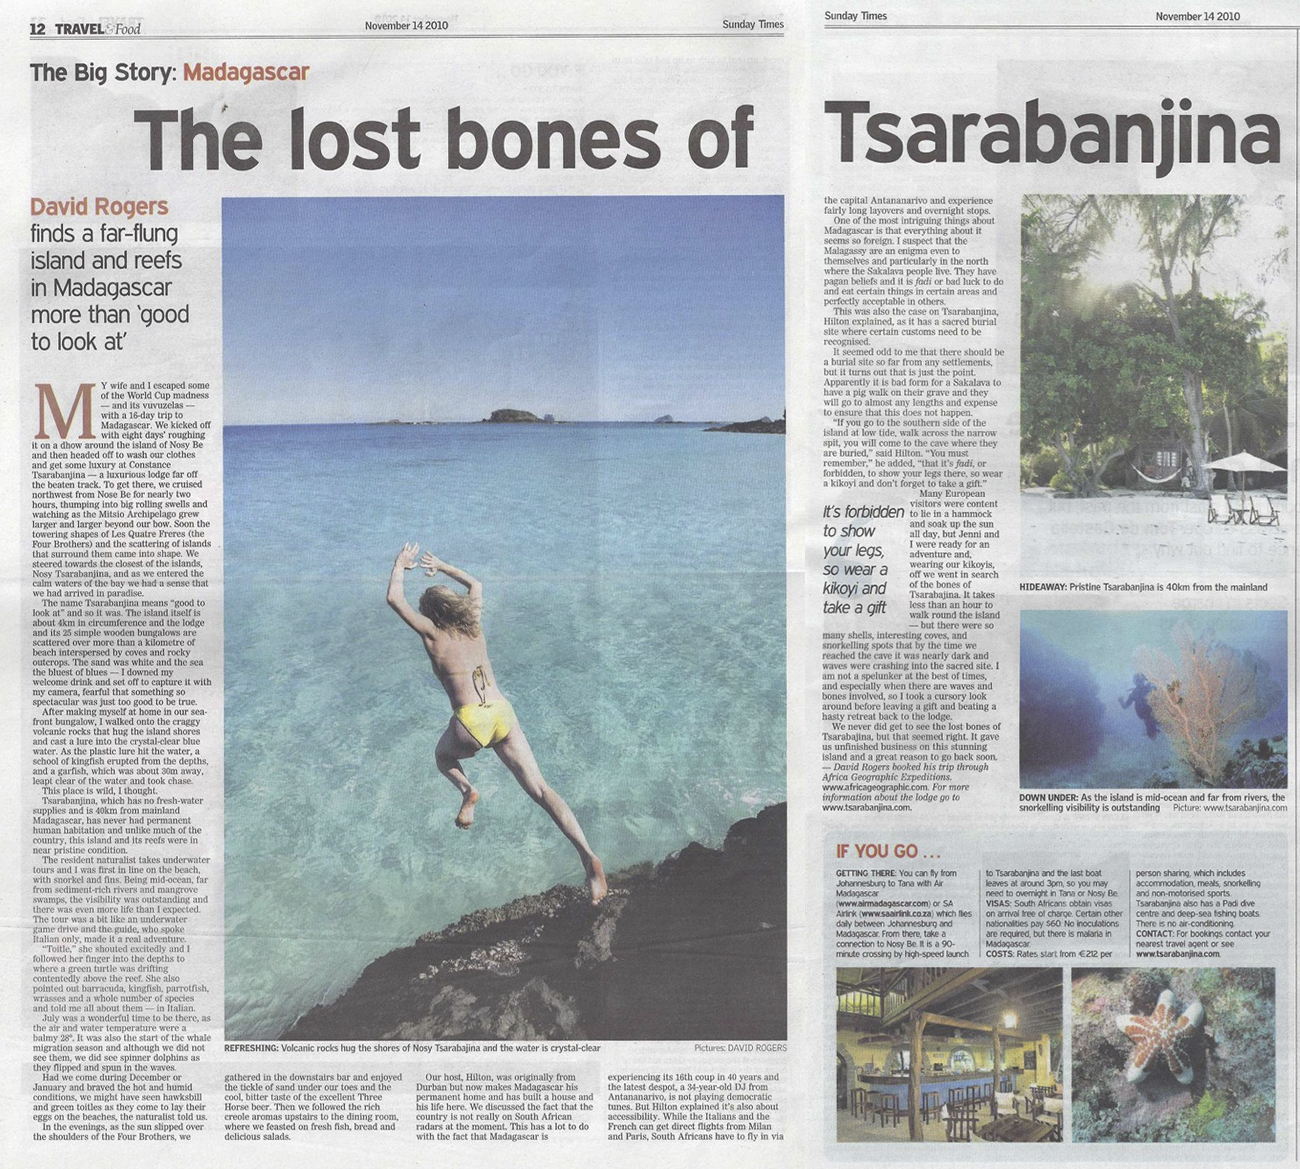 lost bones of tsarabanjina